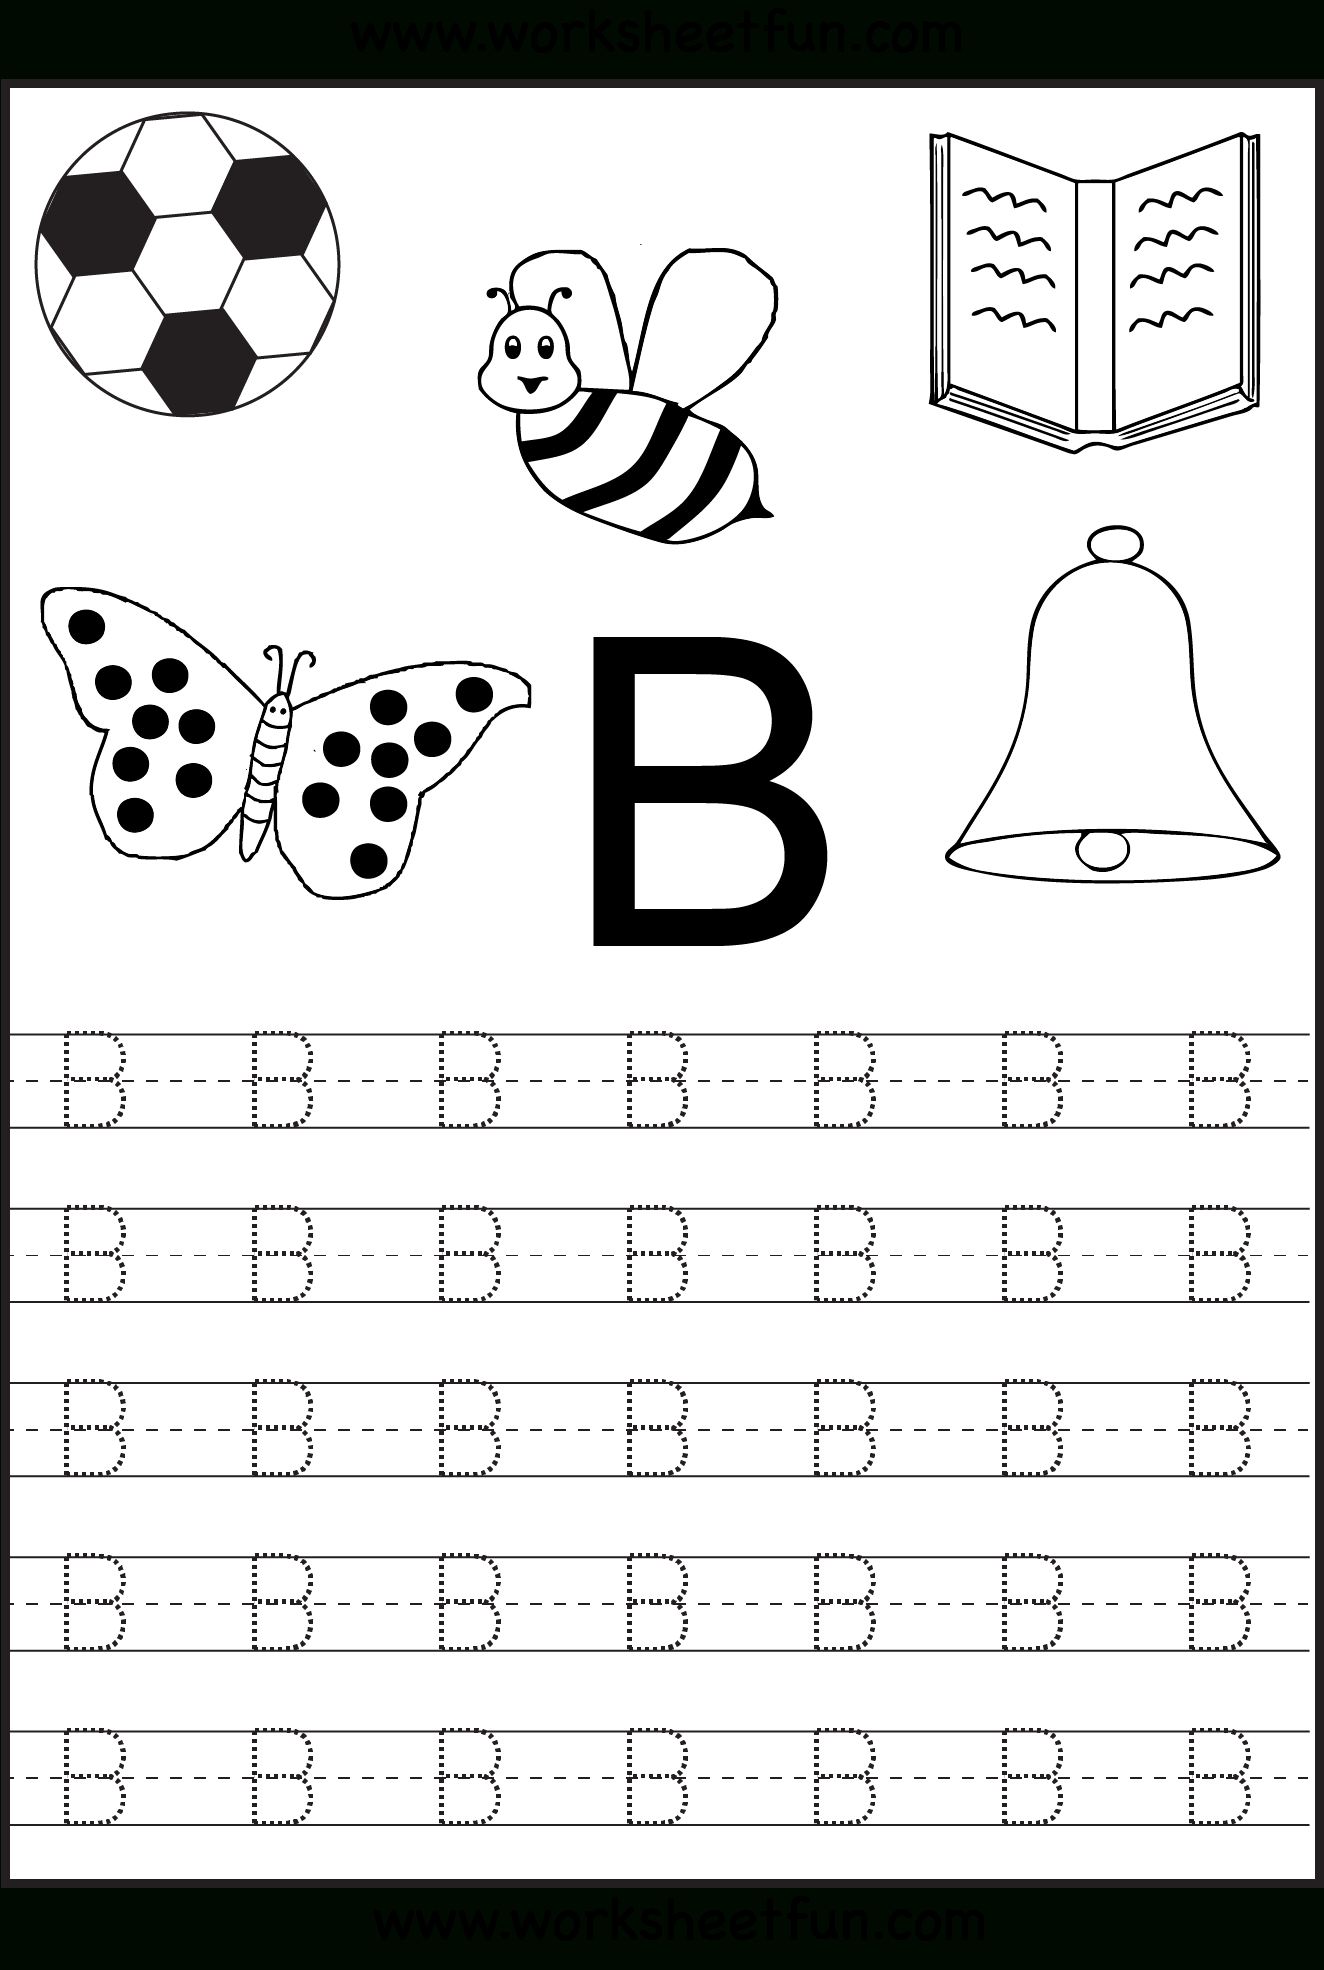 Free Printable Letter Tracing Worksheets For Kindergarten – 26 - Free Printable Name Tracing Worksheets For Preschoolers